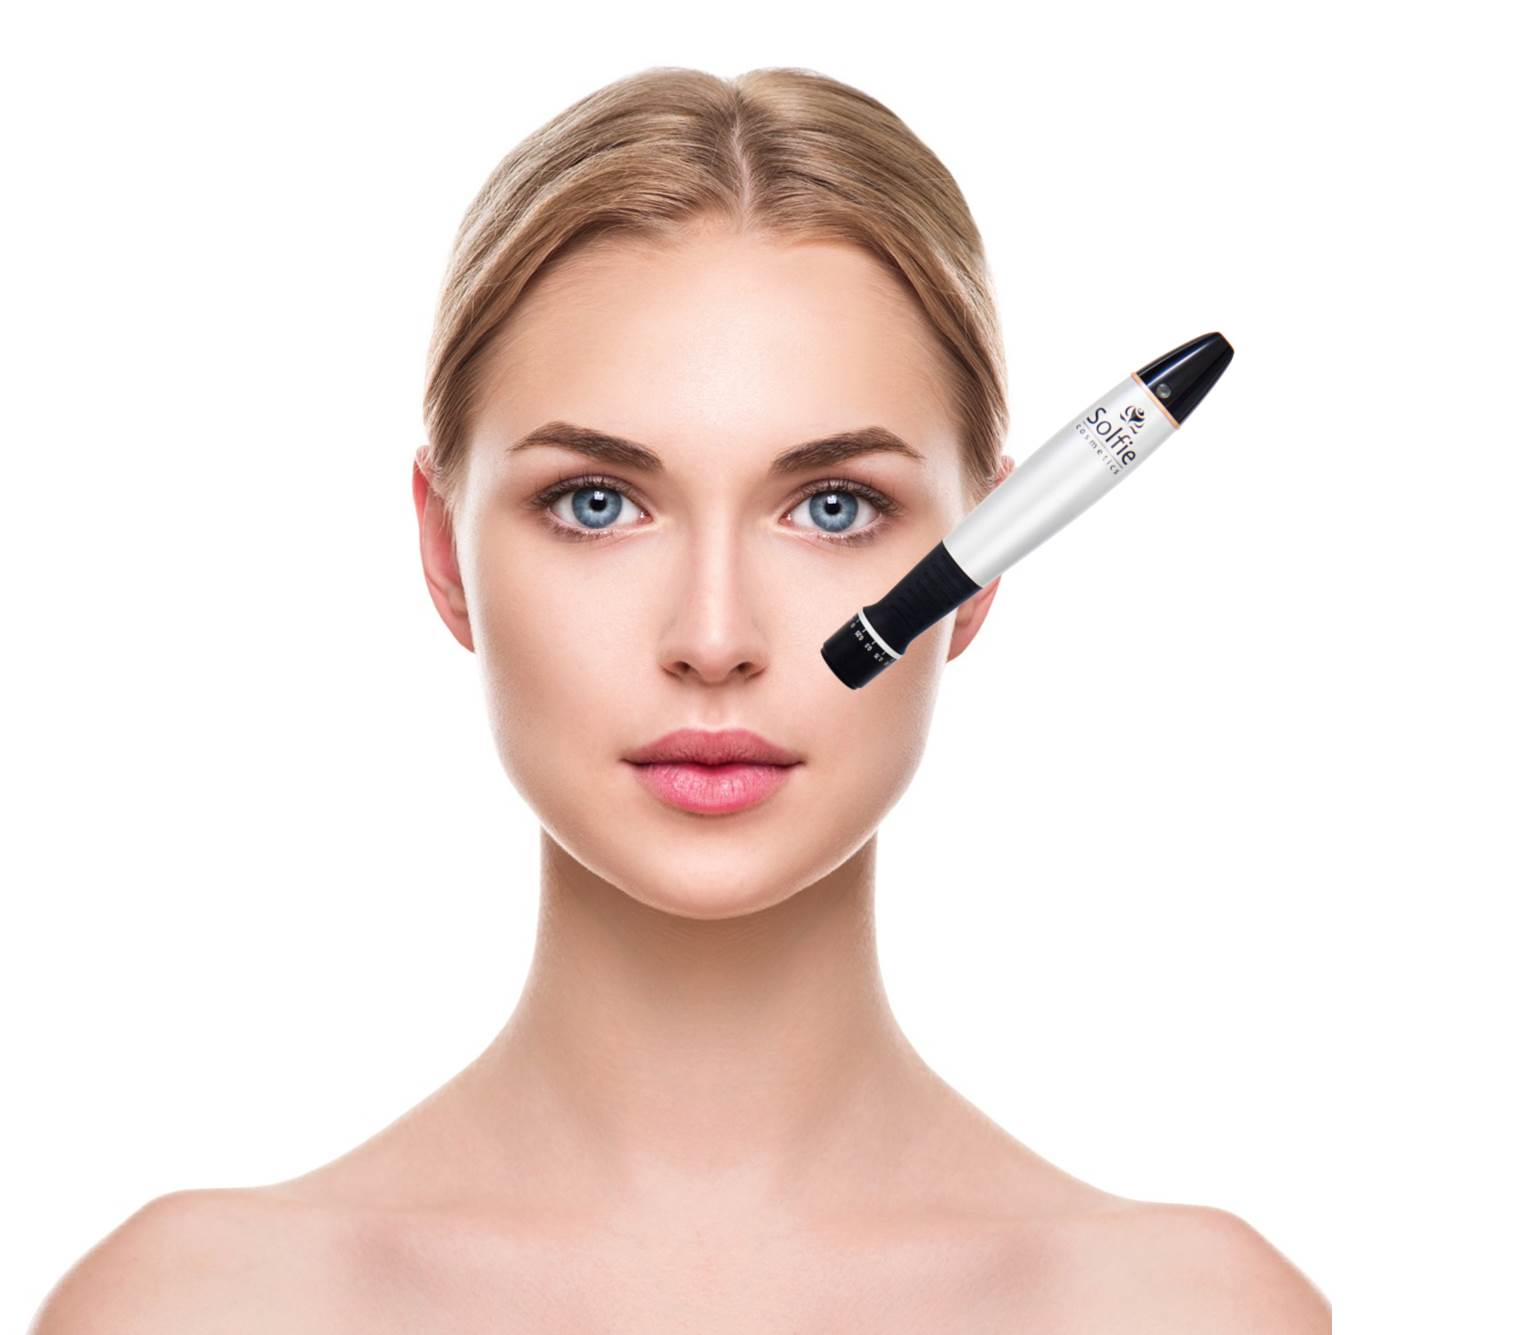 Microneedling Pen mit Model